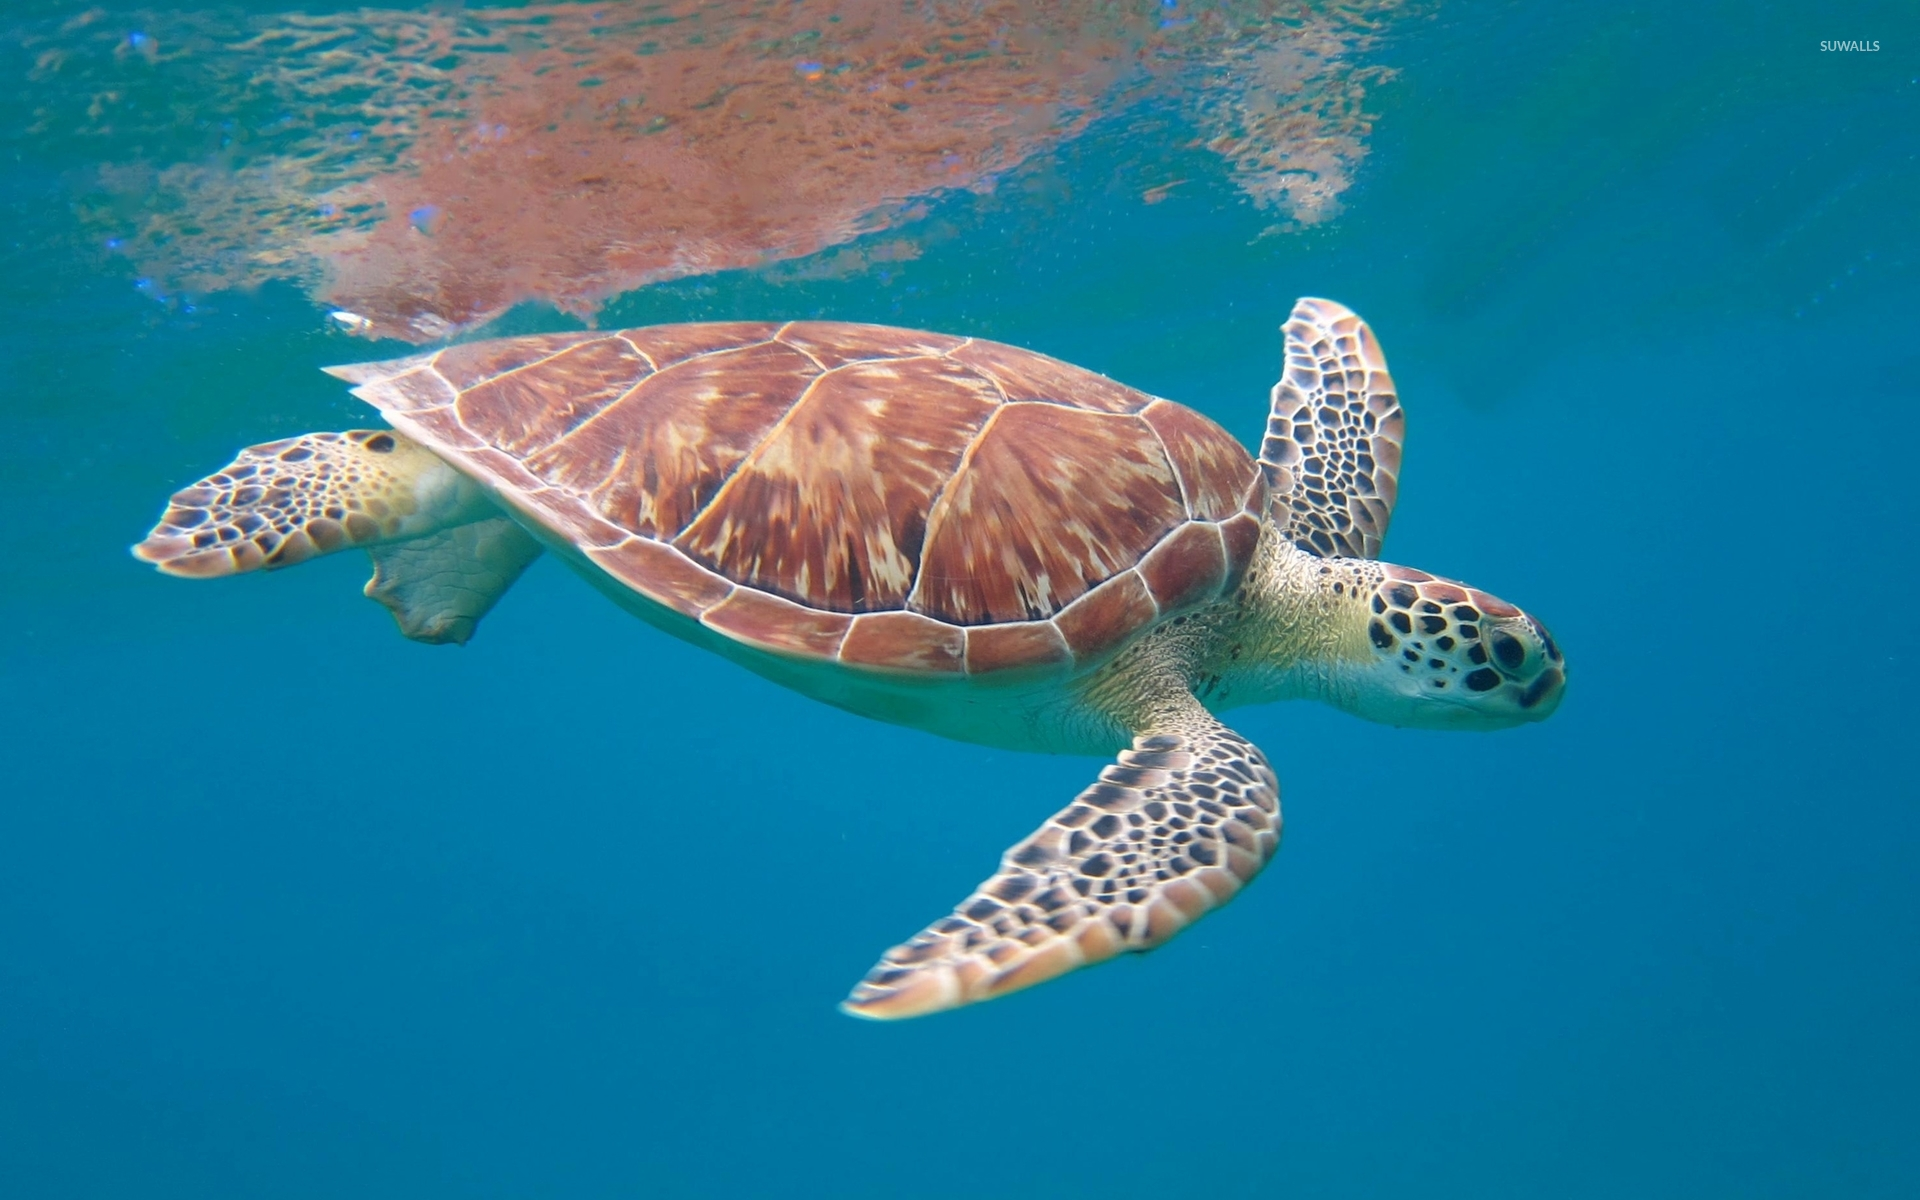 Swimming Wallpaper Quotes Sea Turtle 3 Wallpaper Animal Wallpapers 43311